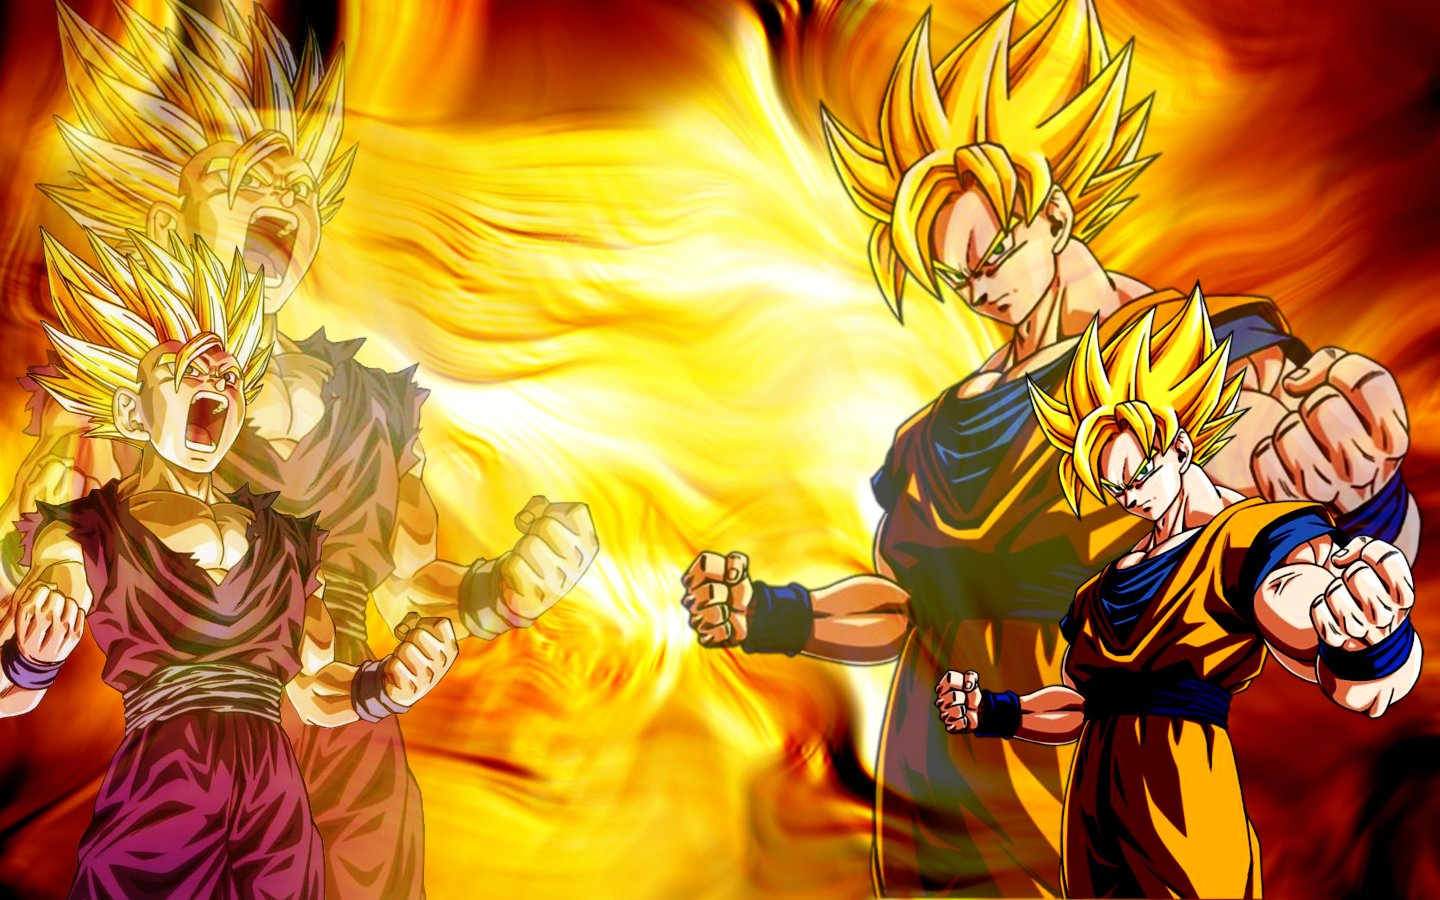 Dragon ball z wallpaper wallpapersafari - Dragon bale z ...